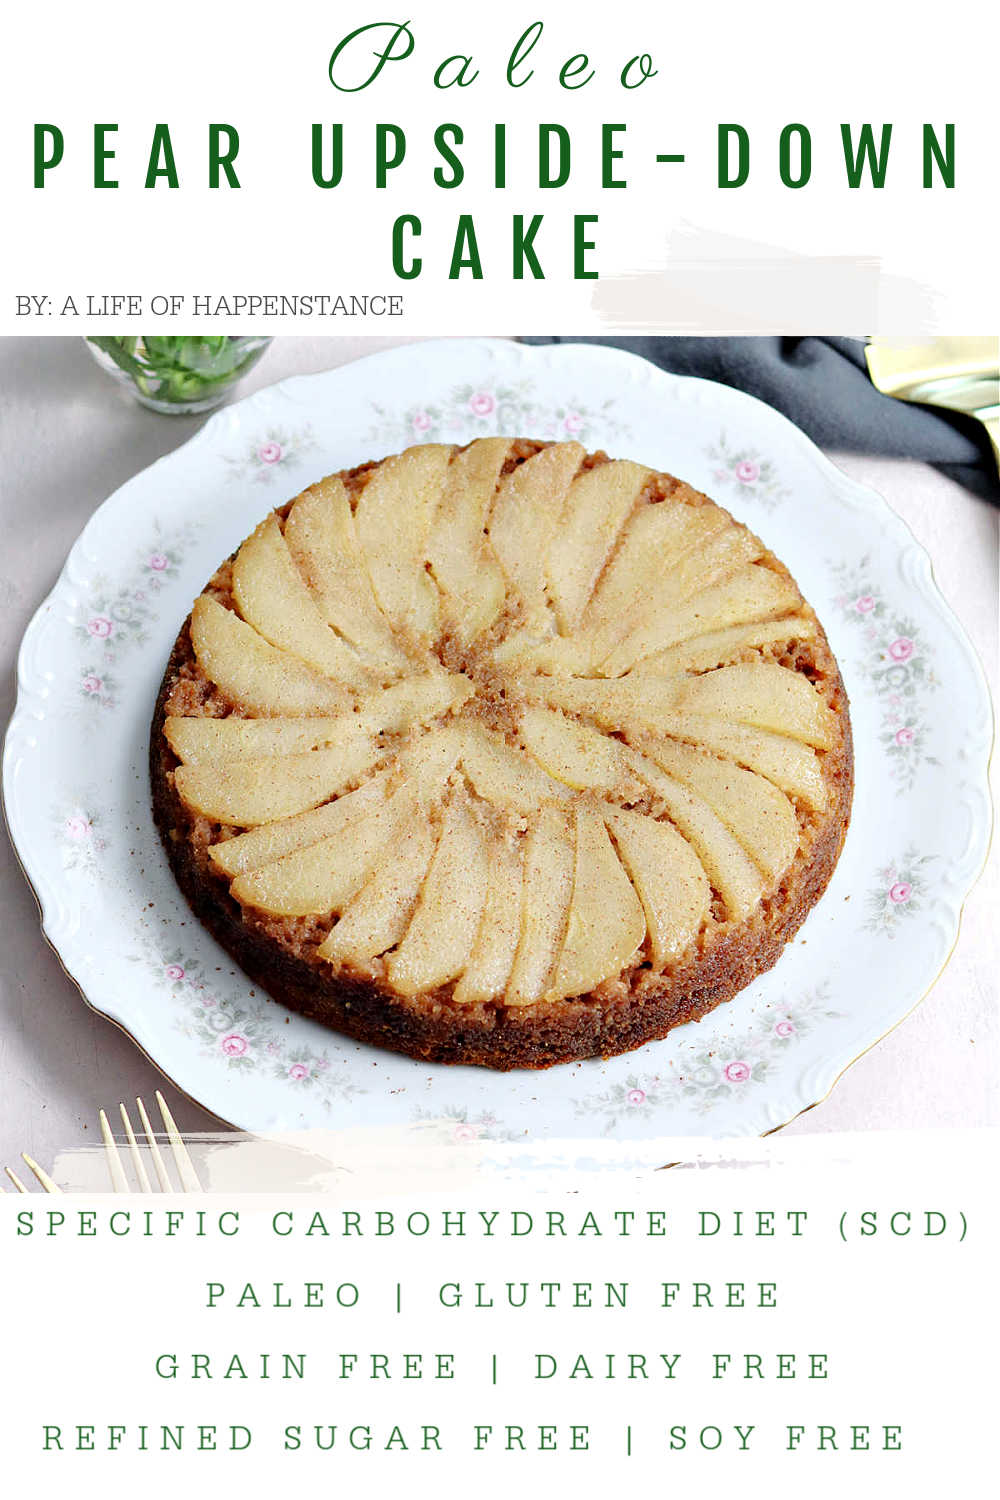 This upside-down paleo pear cake is incredibly moist, flavored with juicy pears, and spiced with cinnamon and ginger. It's a simple and beautiful fall cake recipe that's SCD, paleo, gluten free, grain free, dairy free, and refined sugar free.